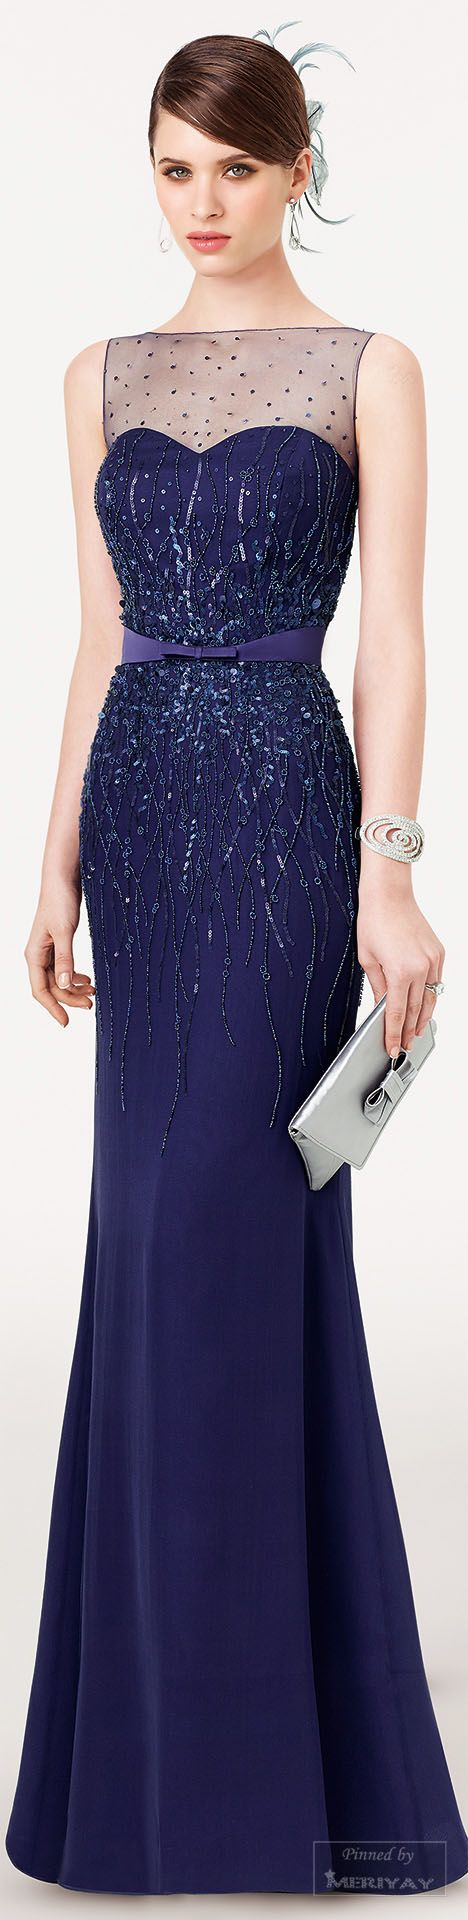 Aire Barcelona ~ Evening Gown, Navy, .2015